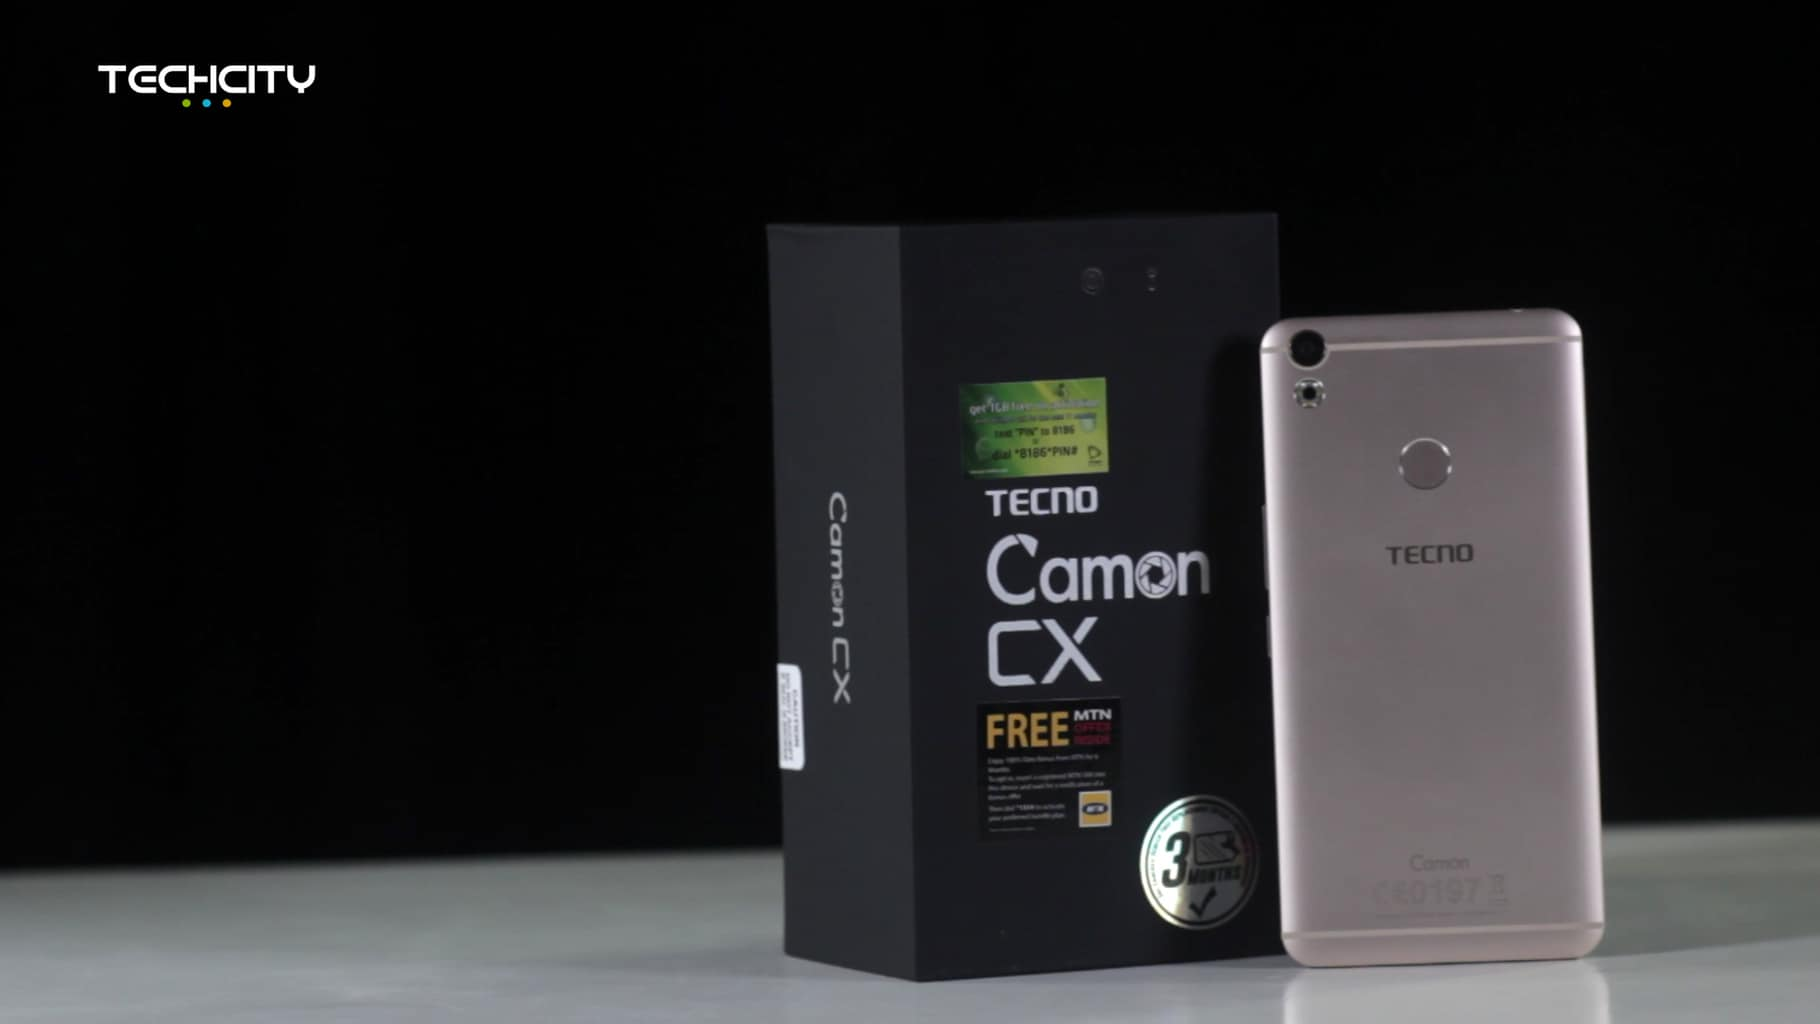 TECNO Camon CX unboxing and first impression - TechCity